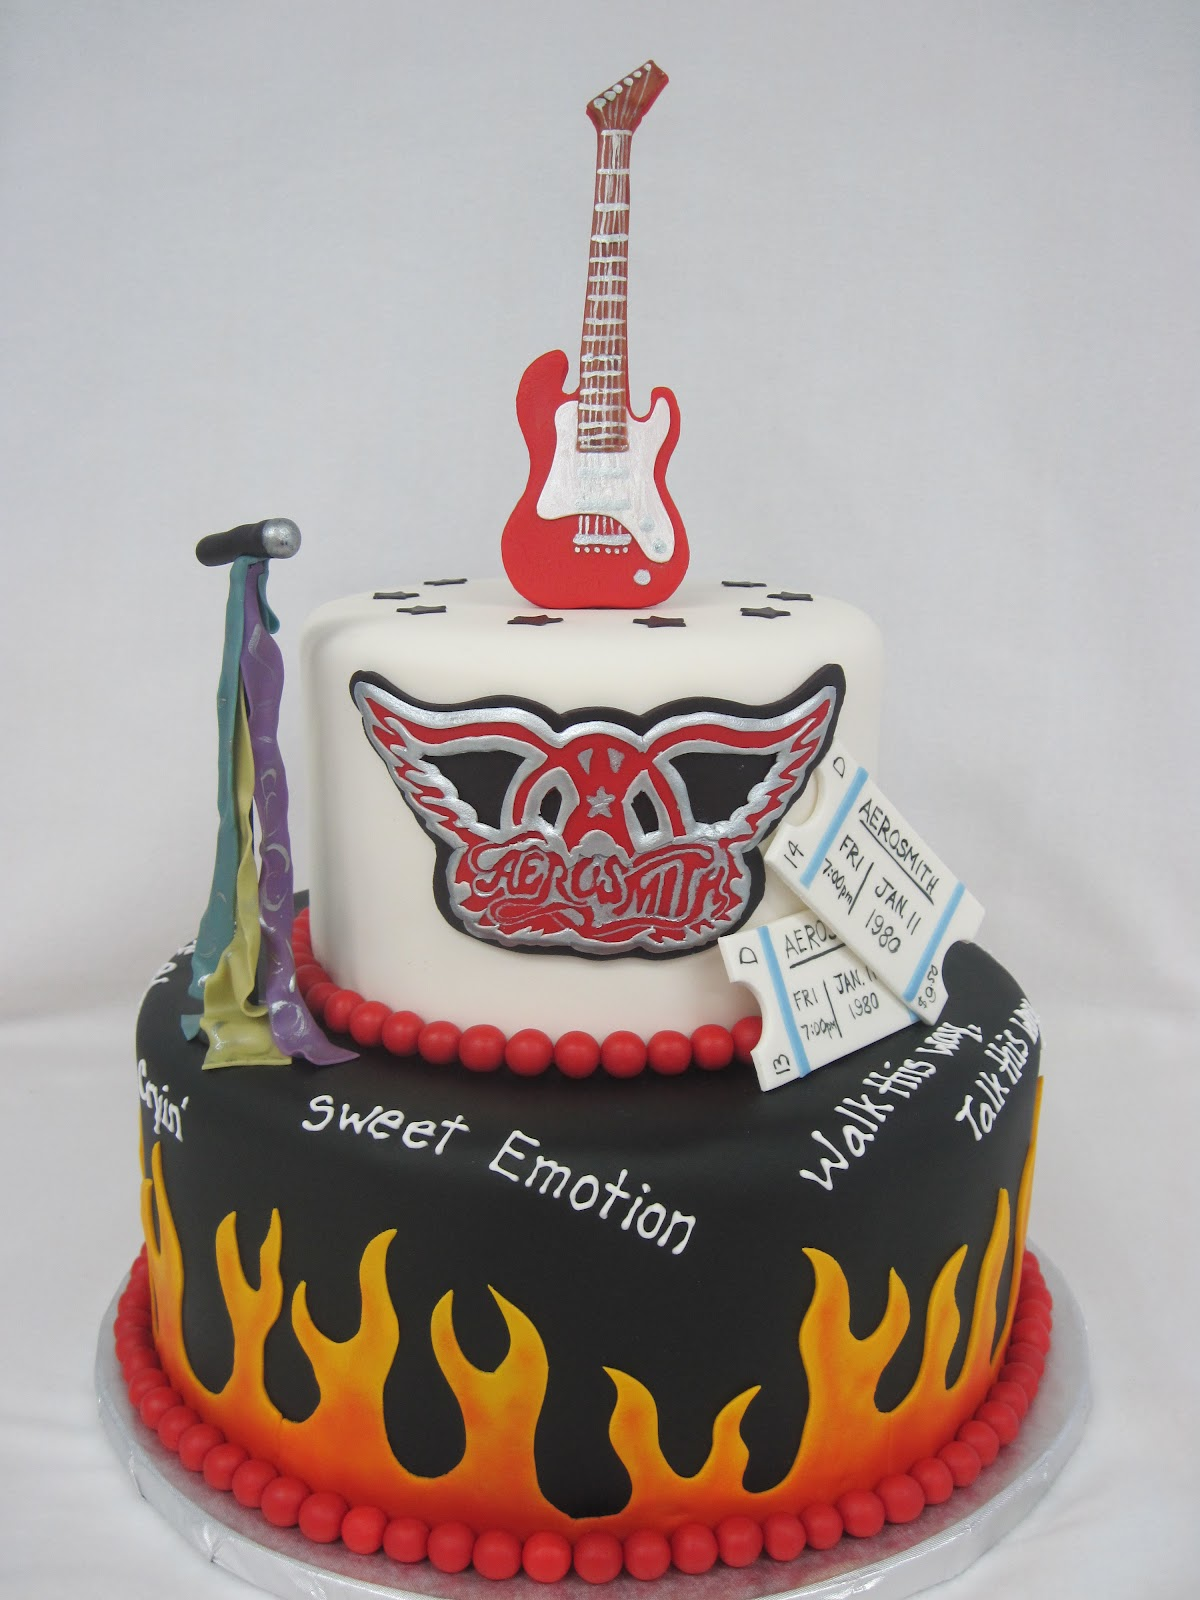 Heathers Cakes and Confections Aerosmith